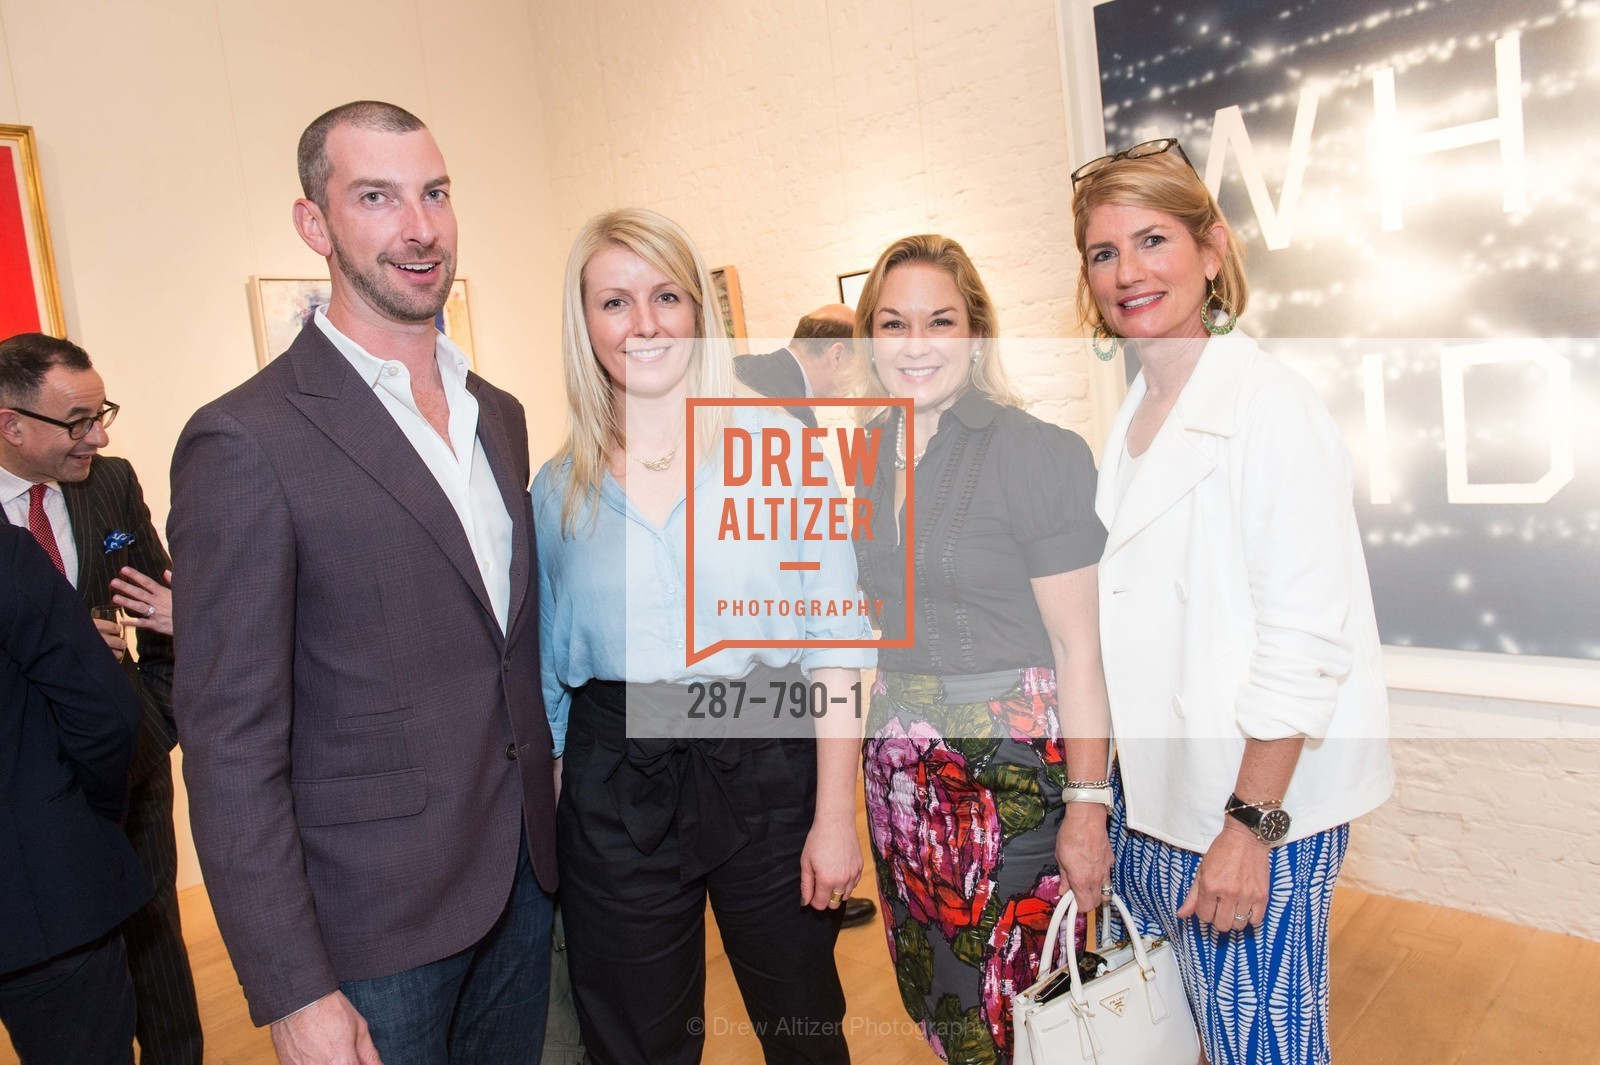 Andrew Teufel, Kira Lyons, Ana Dierkhifind, Mary Jane Dubois, Post War and Contemporary Preview at HEDGE GALLERY, US, April 15th, 2015,Drew Altizer, Drew Altizer Photography, full-service agency, private events, San Francisco photographer, photographer california